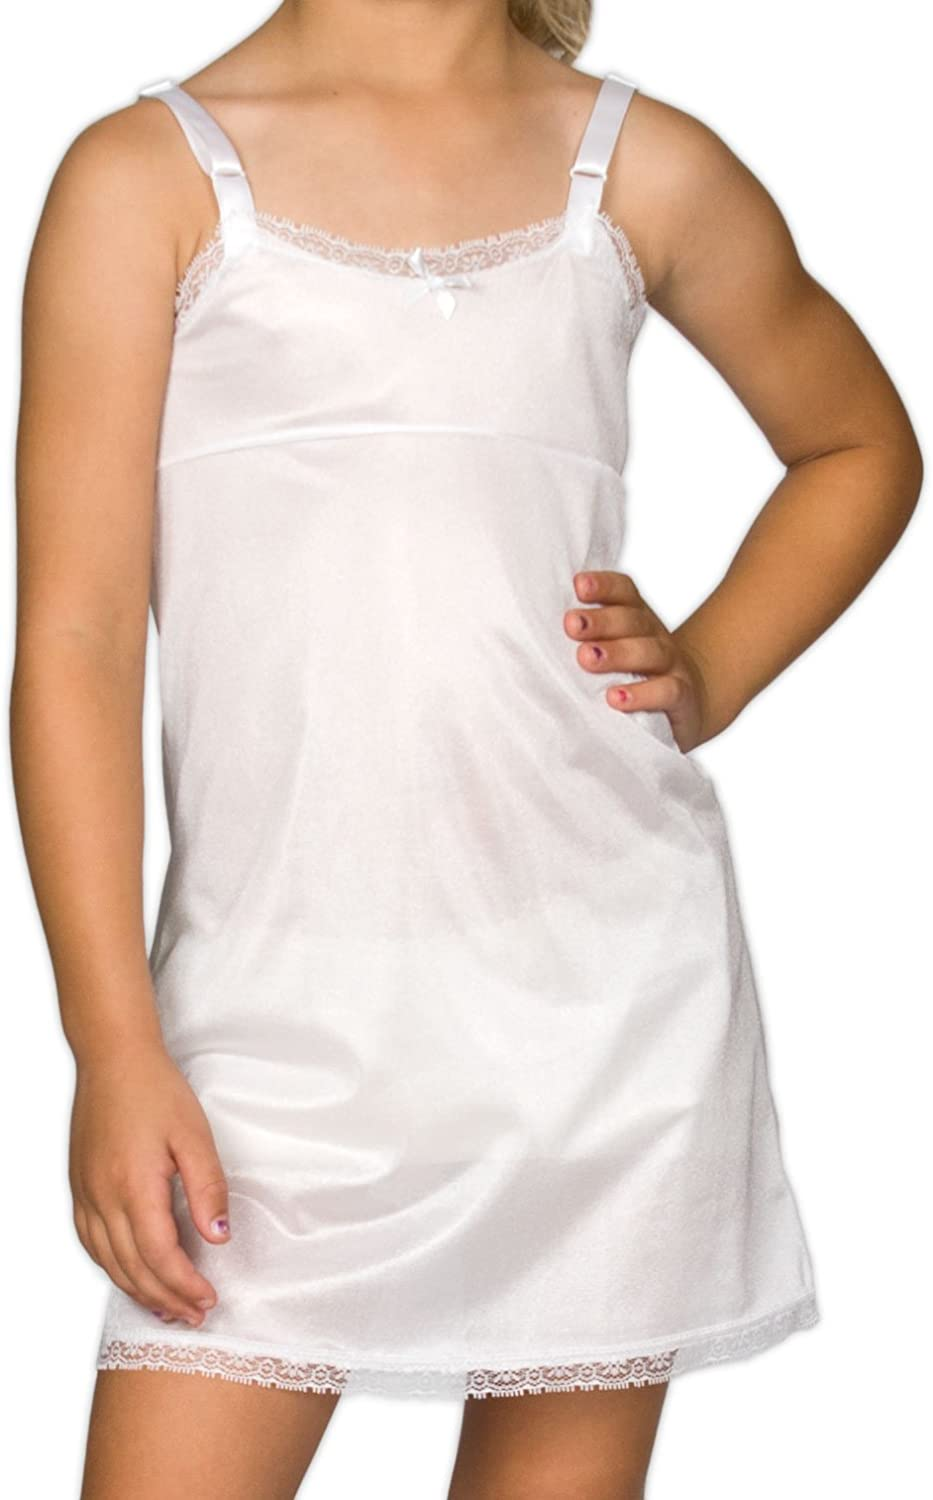 I.C. Collections Little Girls White Simple Empire Waist Slip, 4-6X